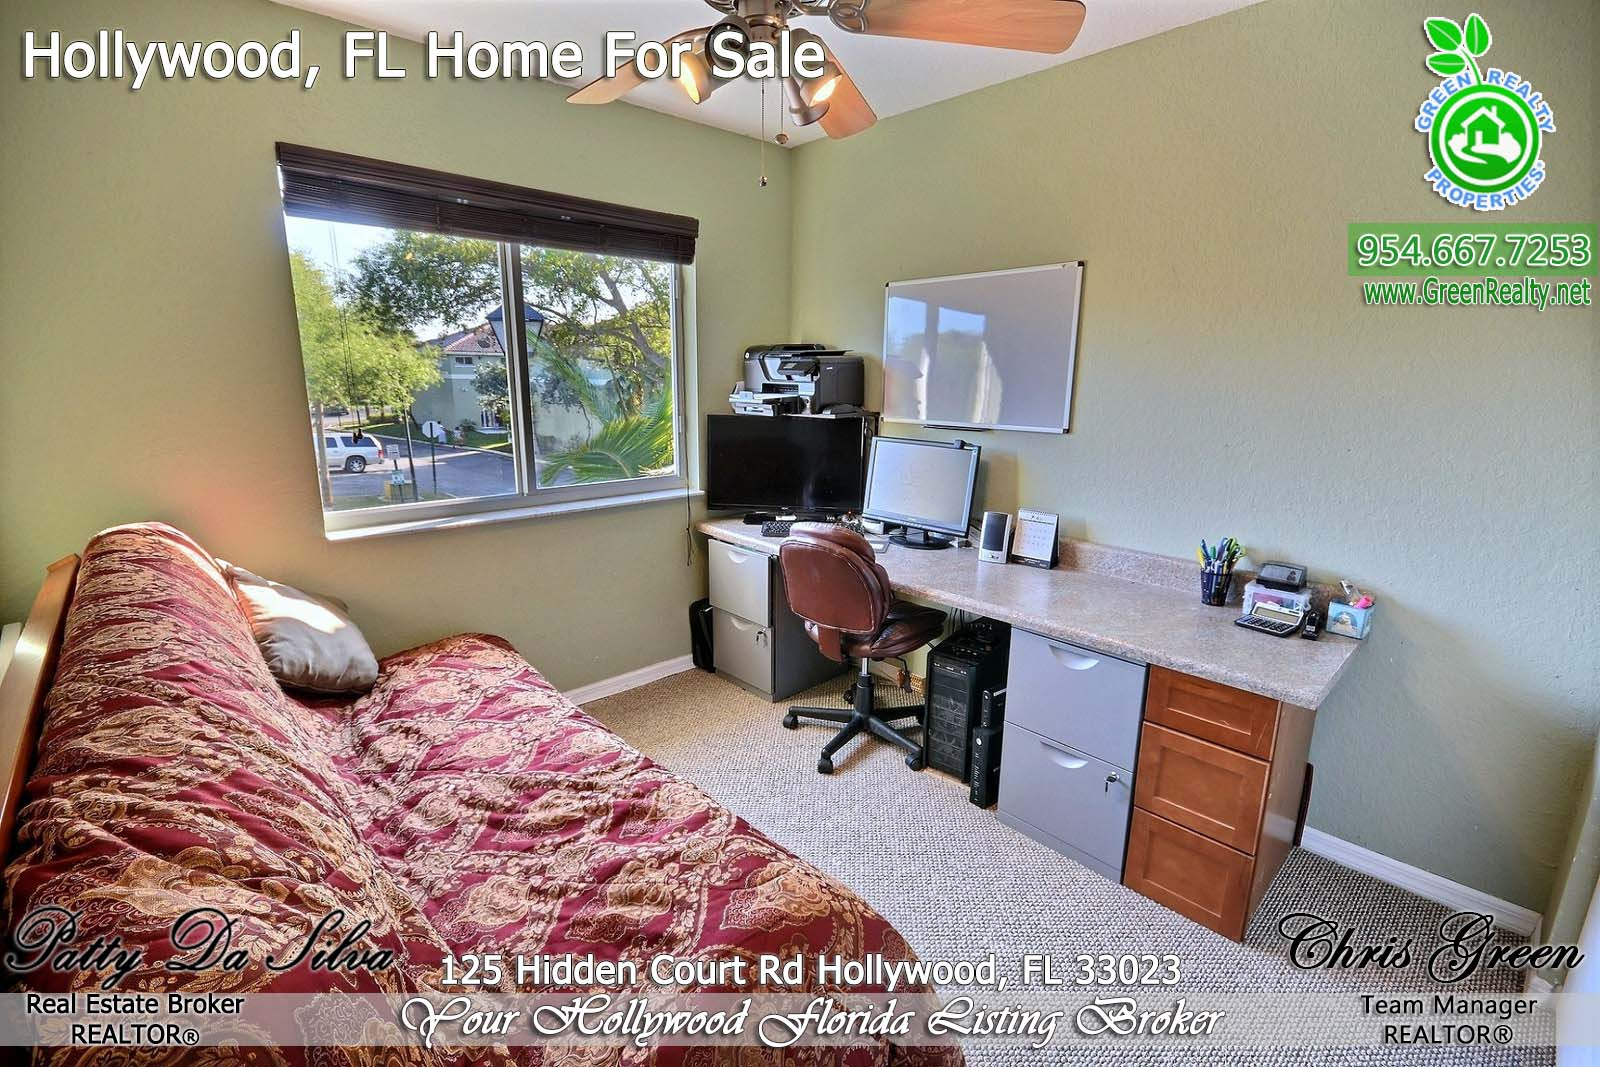 17 Hollywood Florida REALTORS (3)